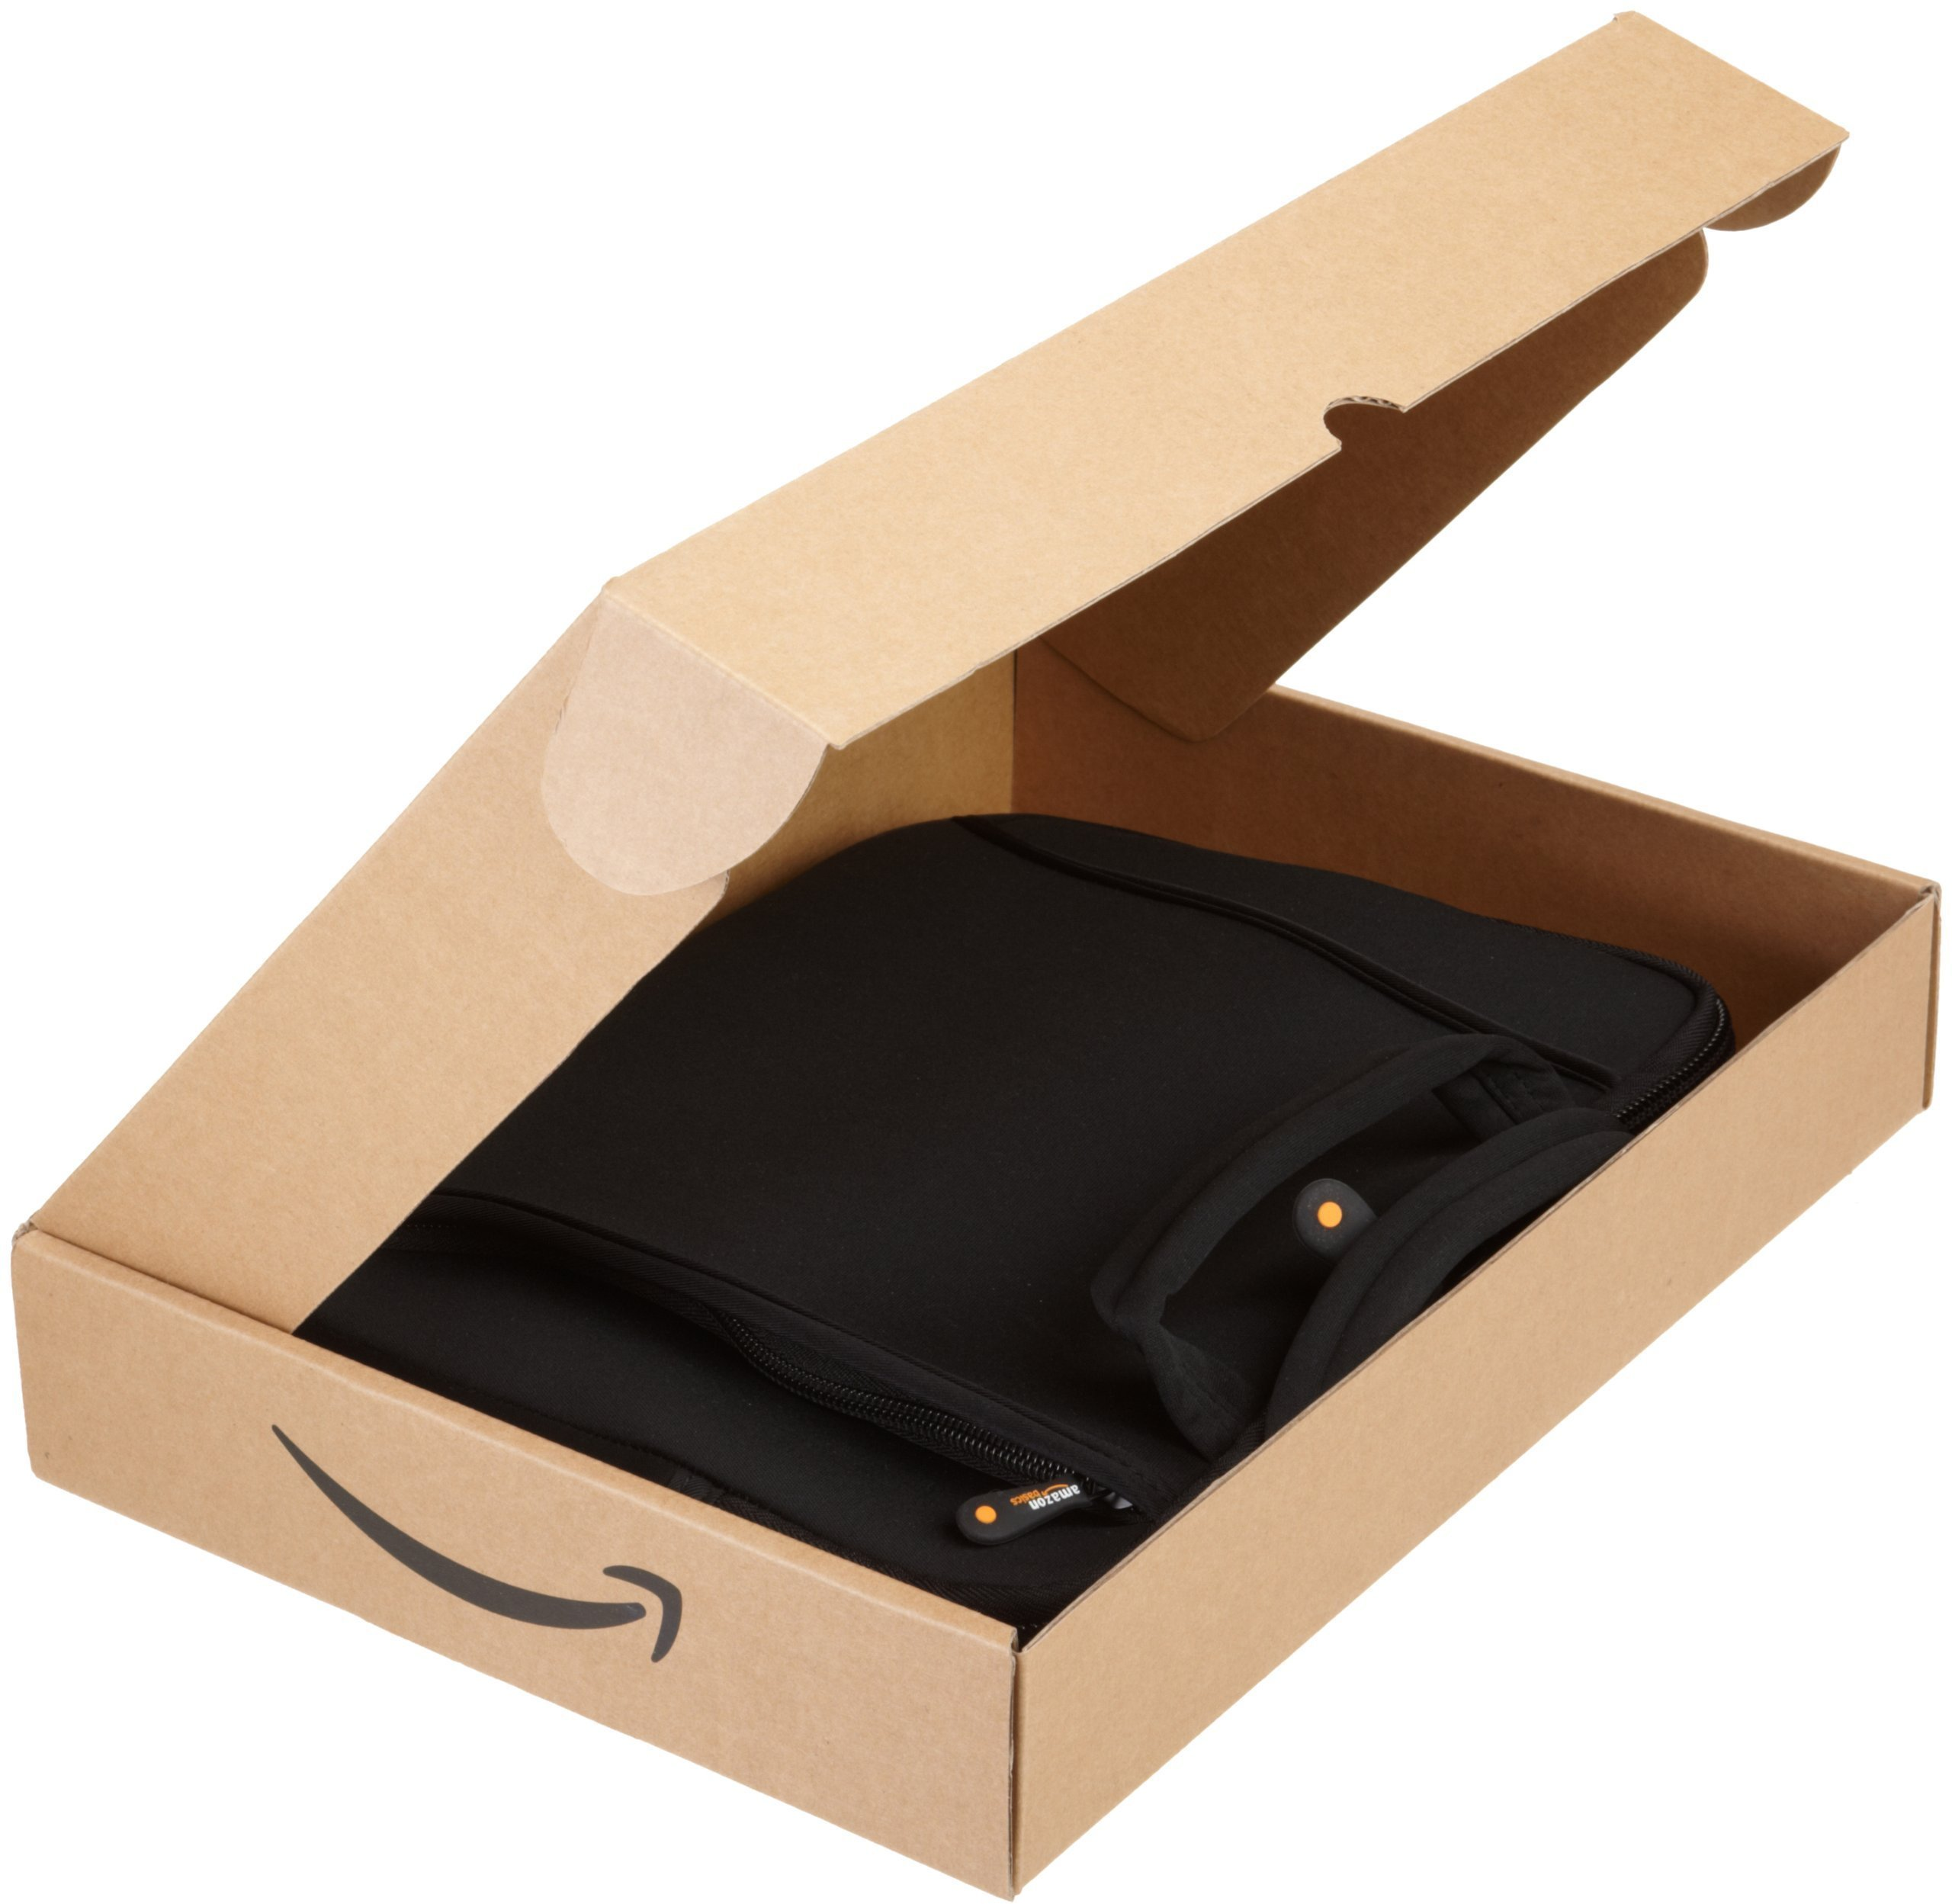 AmazonBasics iPad Air and Netbook Bag with Handle Fits 7 to 10-Inch Tablets (Black) by AmazonBasics (Image #7)